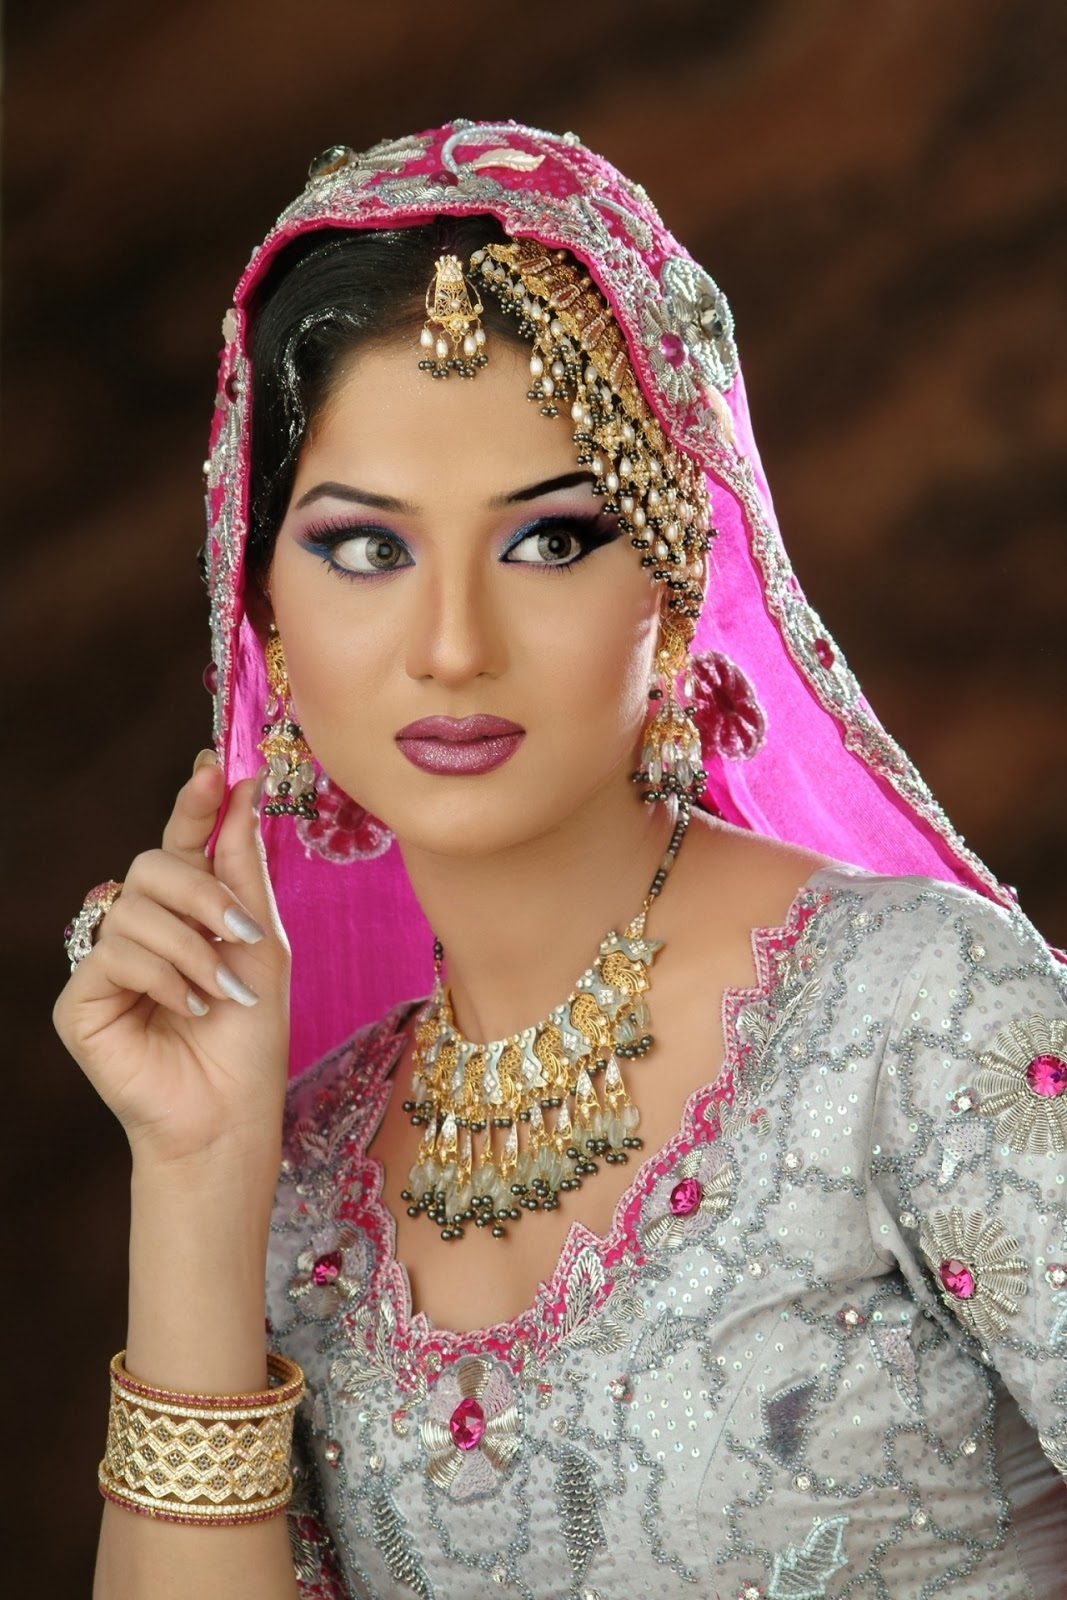 Pakistani And Indian Bridal Makeup For New Year From 2013 & 2014 inside Bridal Makeup Pics Pakistani 2013